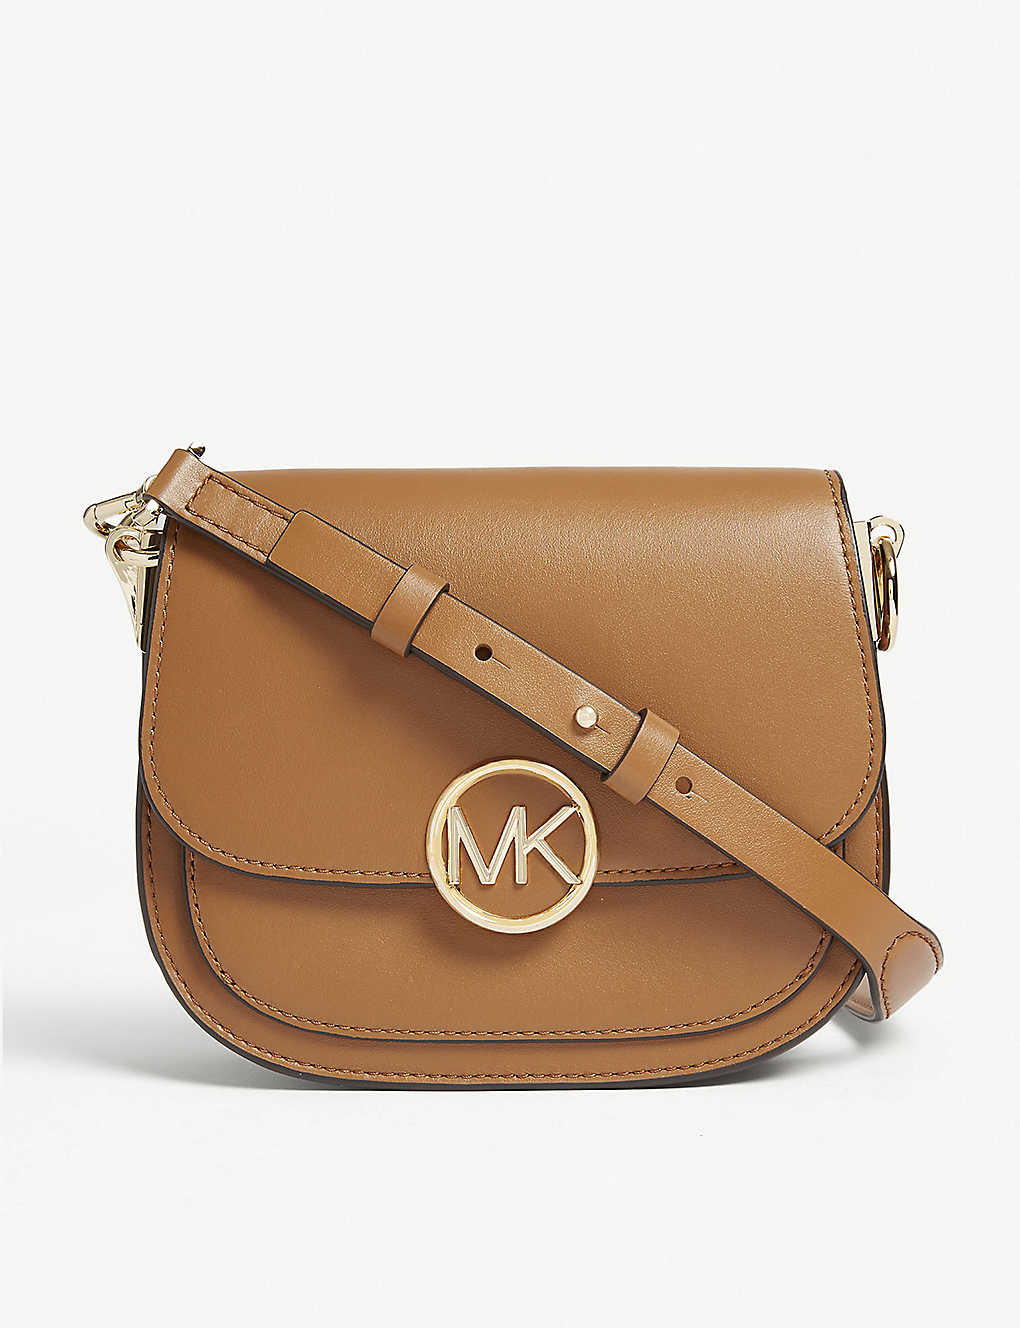 9dbb23dd0a09 MICHAEL MICHAEL KORS - Lillie small leather saddle bag | Selfridges.com